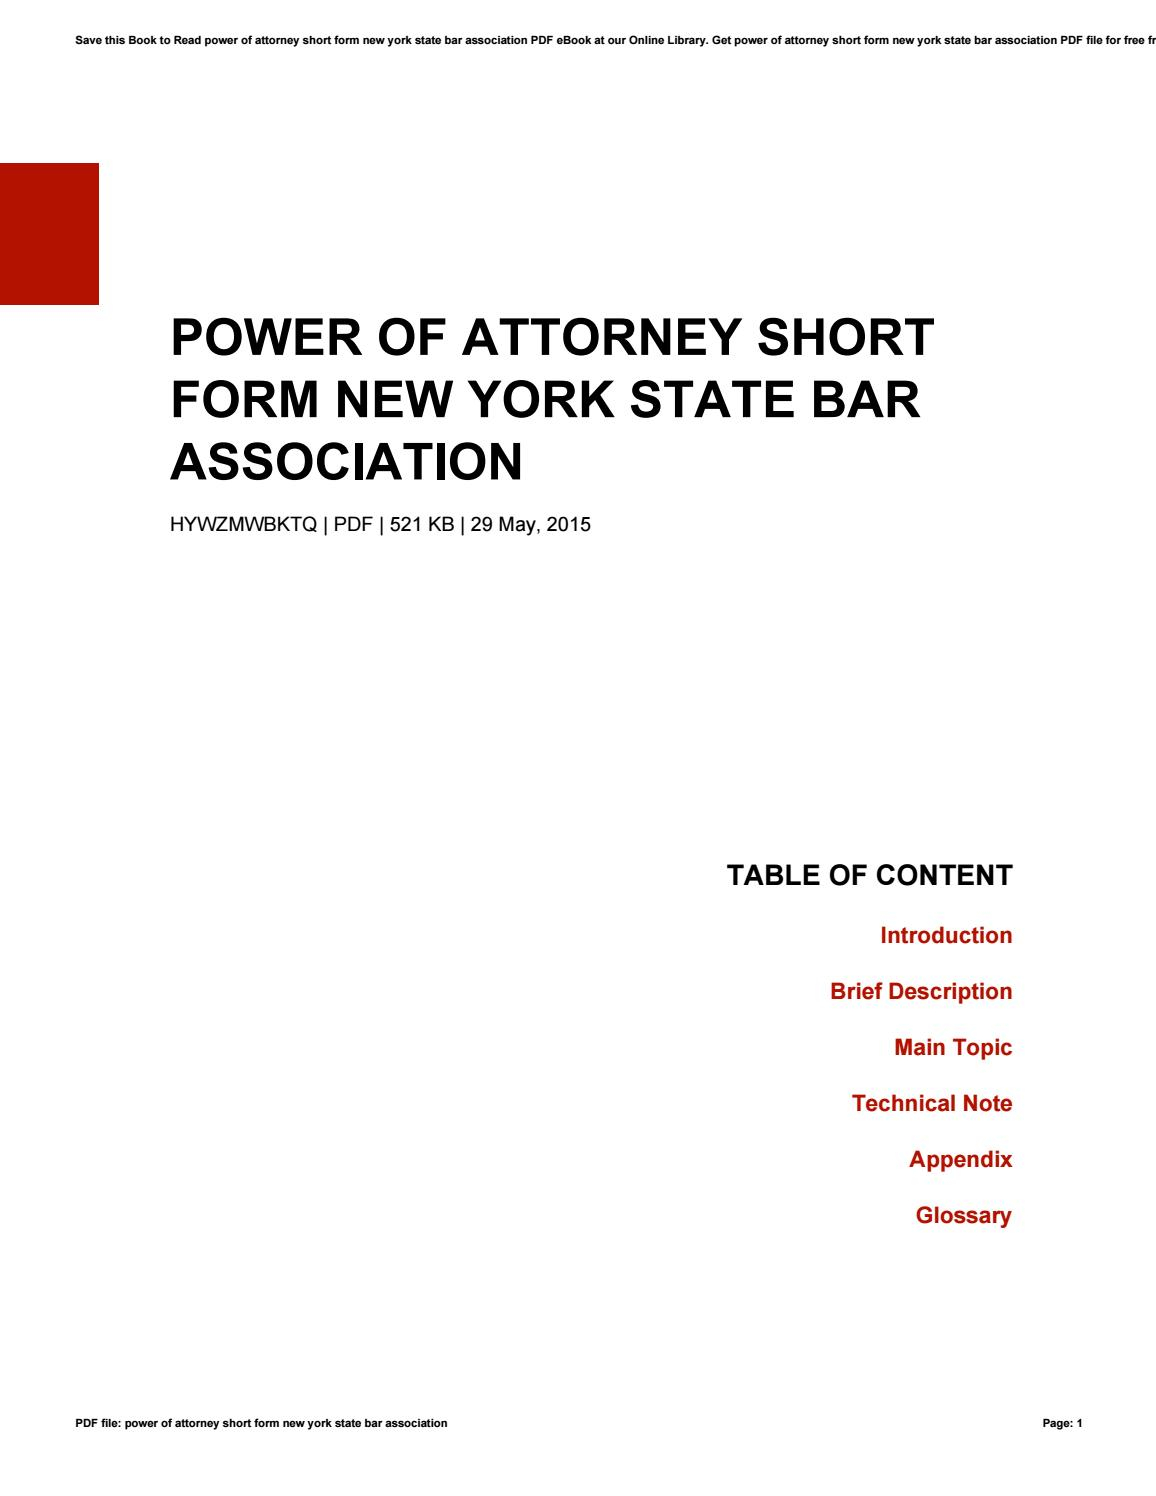 Power Of Attorney Short Form New York State Bar